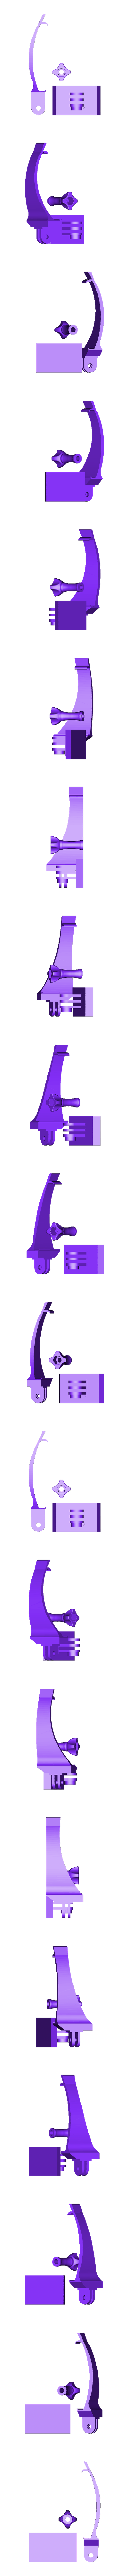 support_tel_pince_complet_avec_support.stl Download free STL file support A5 2017 pour trépied • 3D printer template, Cyborg